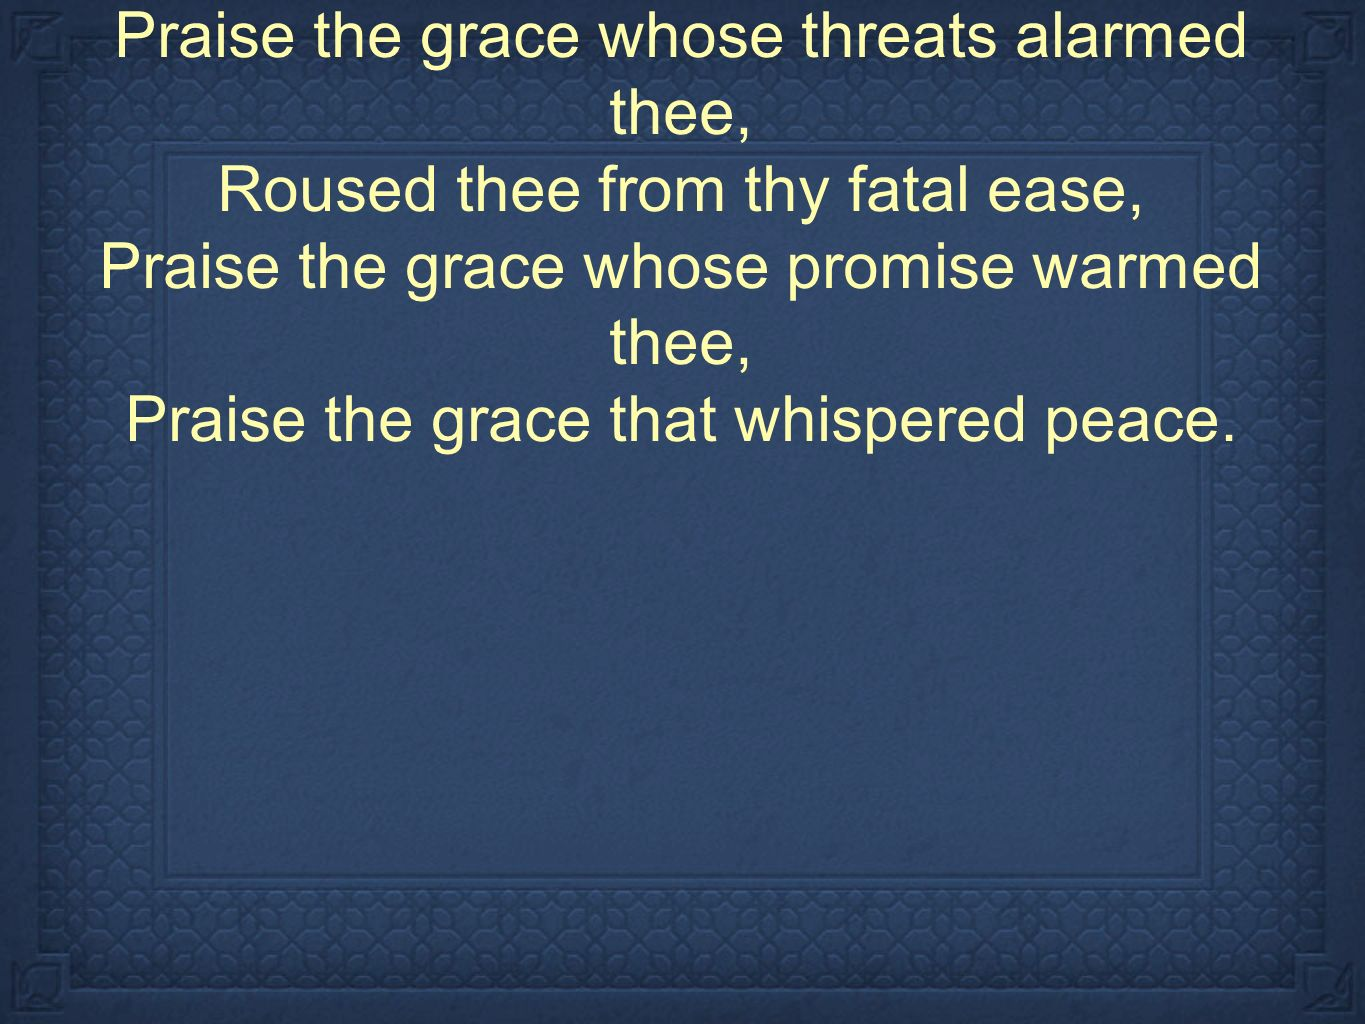 Praise the grace whose threats alarmed thee, Roused thee from thy fatal ease, Praise the grace whose promise warmed thee, Praise the grace that whispered peace.